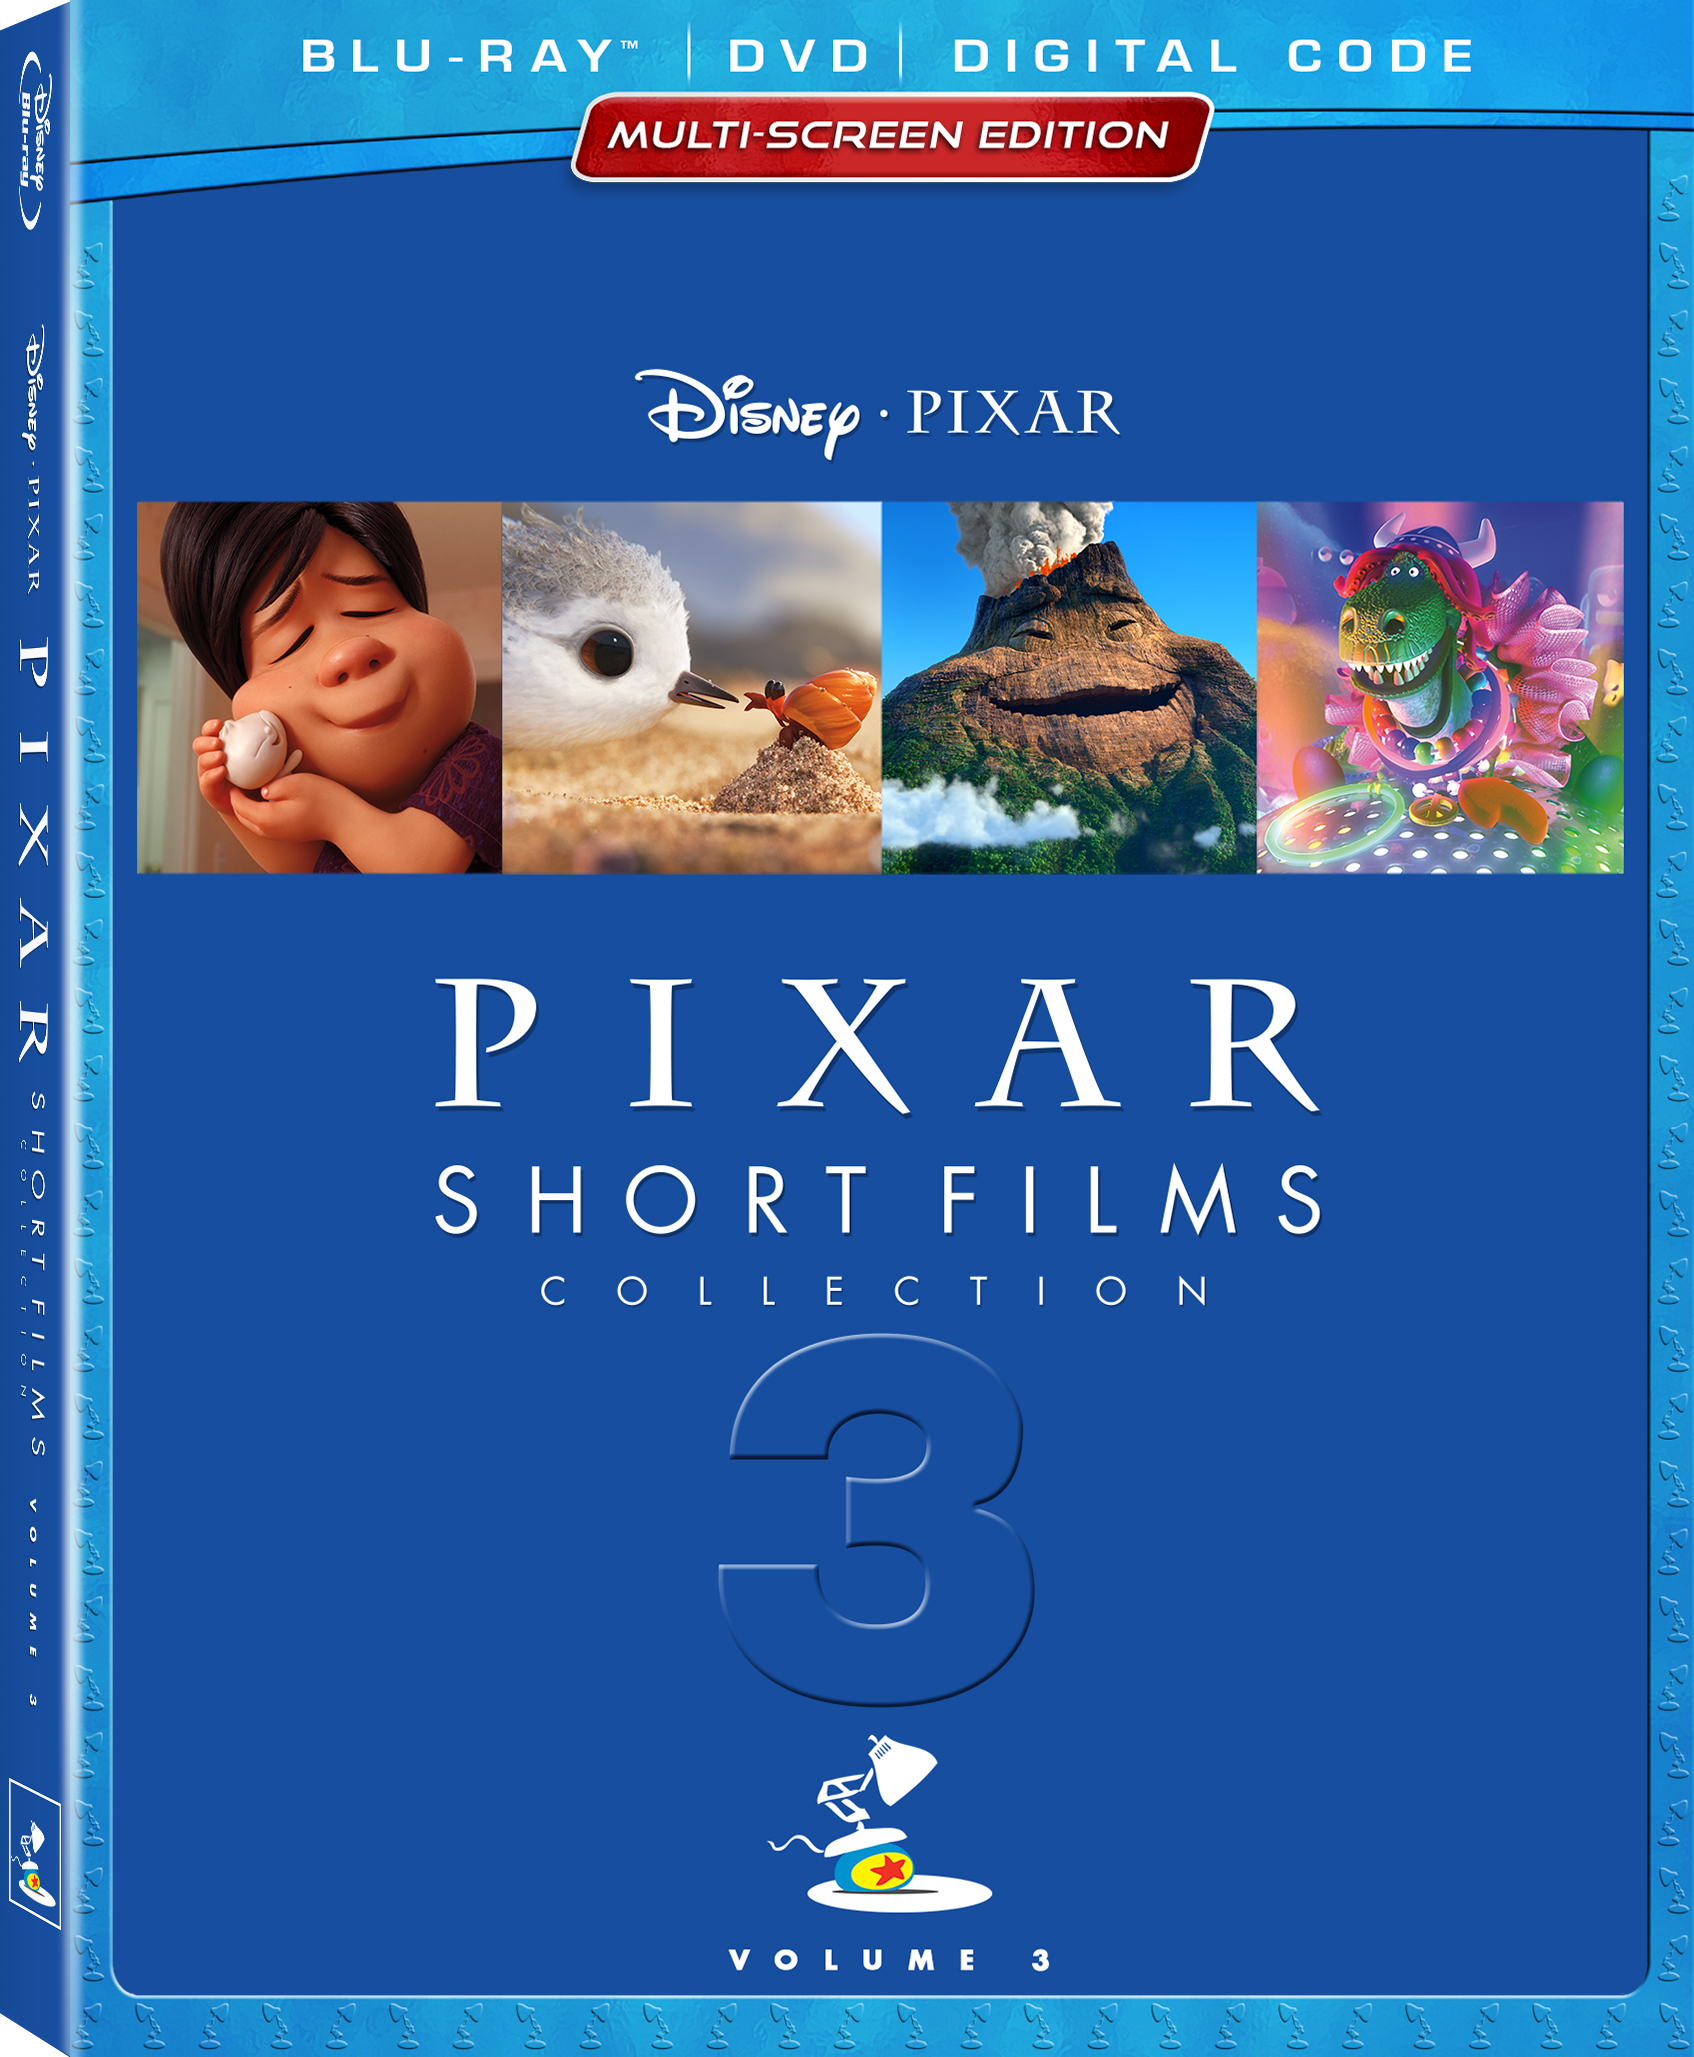 Disney And Pixar Short Films Collection Volume 3 Nothing But Geek